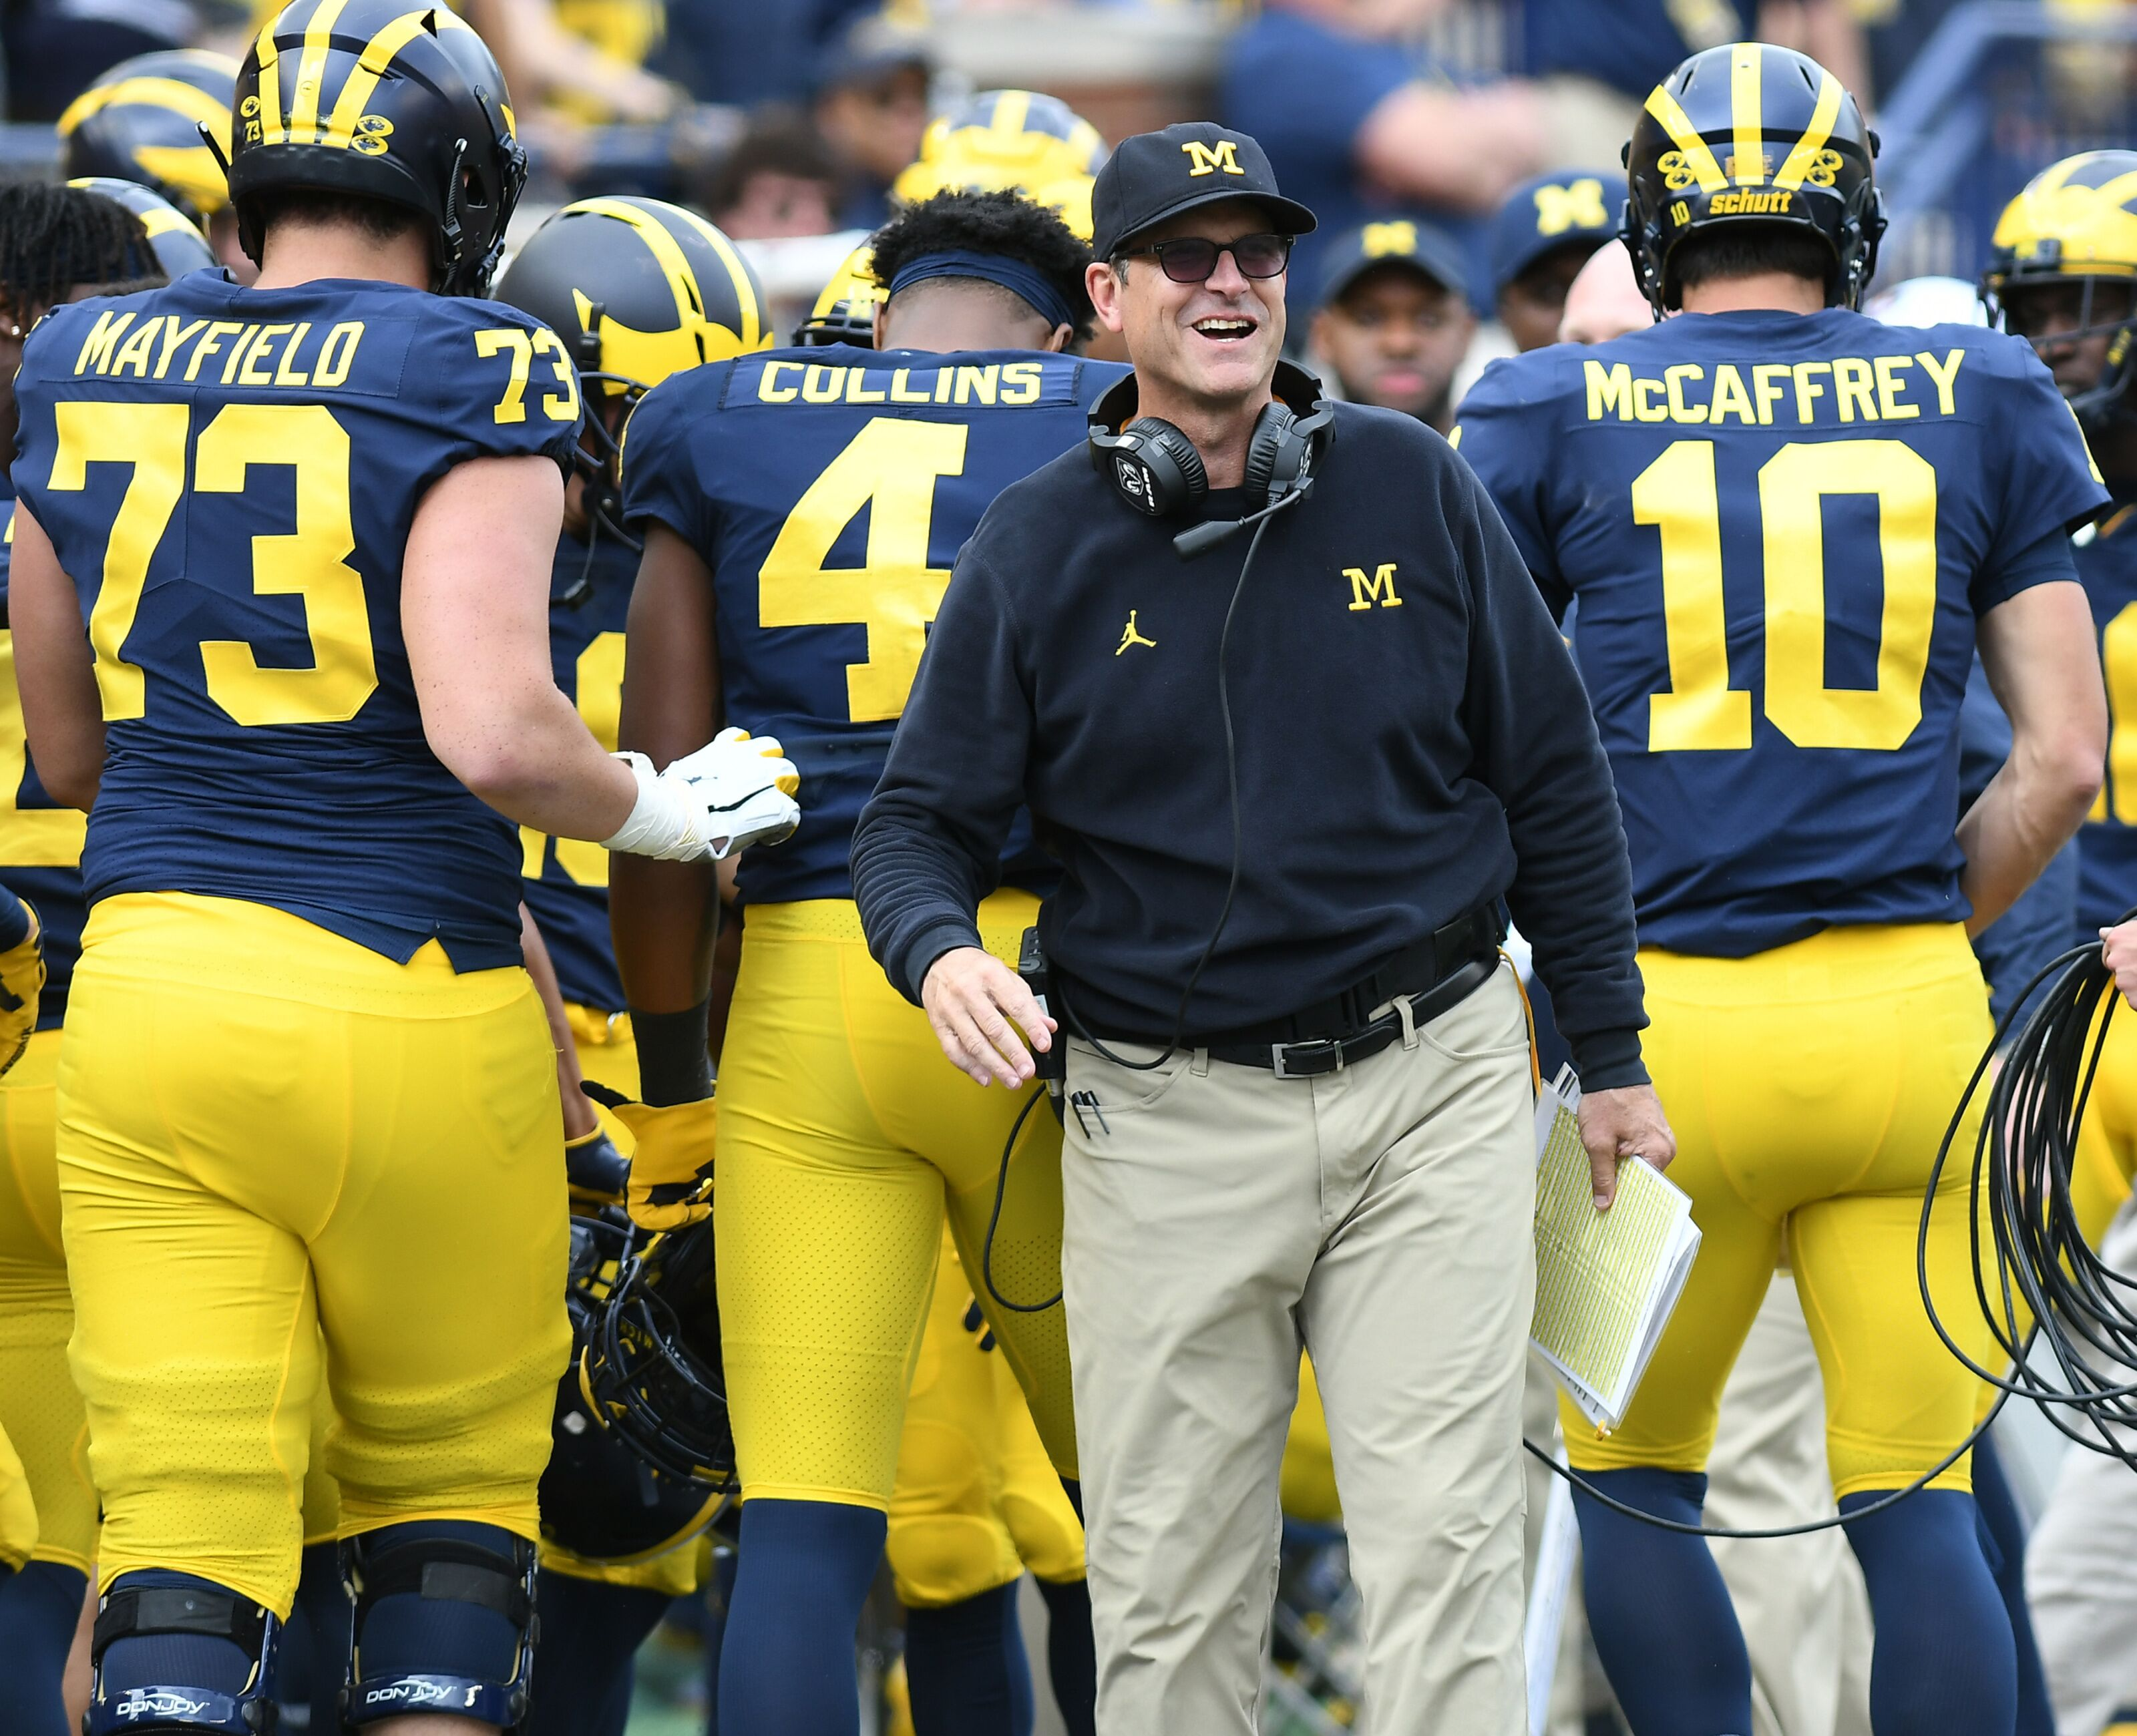 2019 Big Ten win totals, betting advice and predictions: Is it finally Michigan's year?